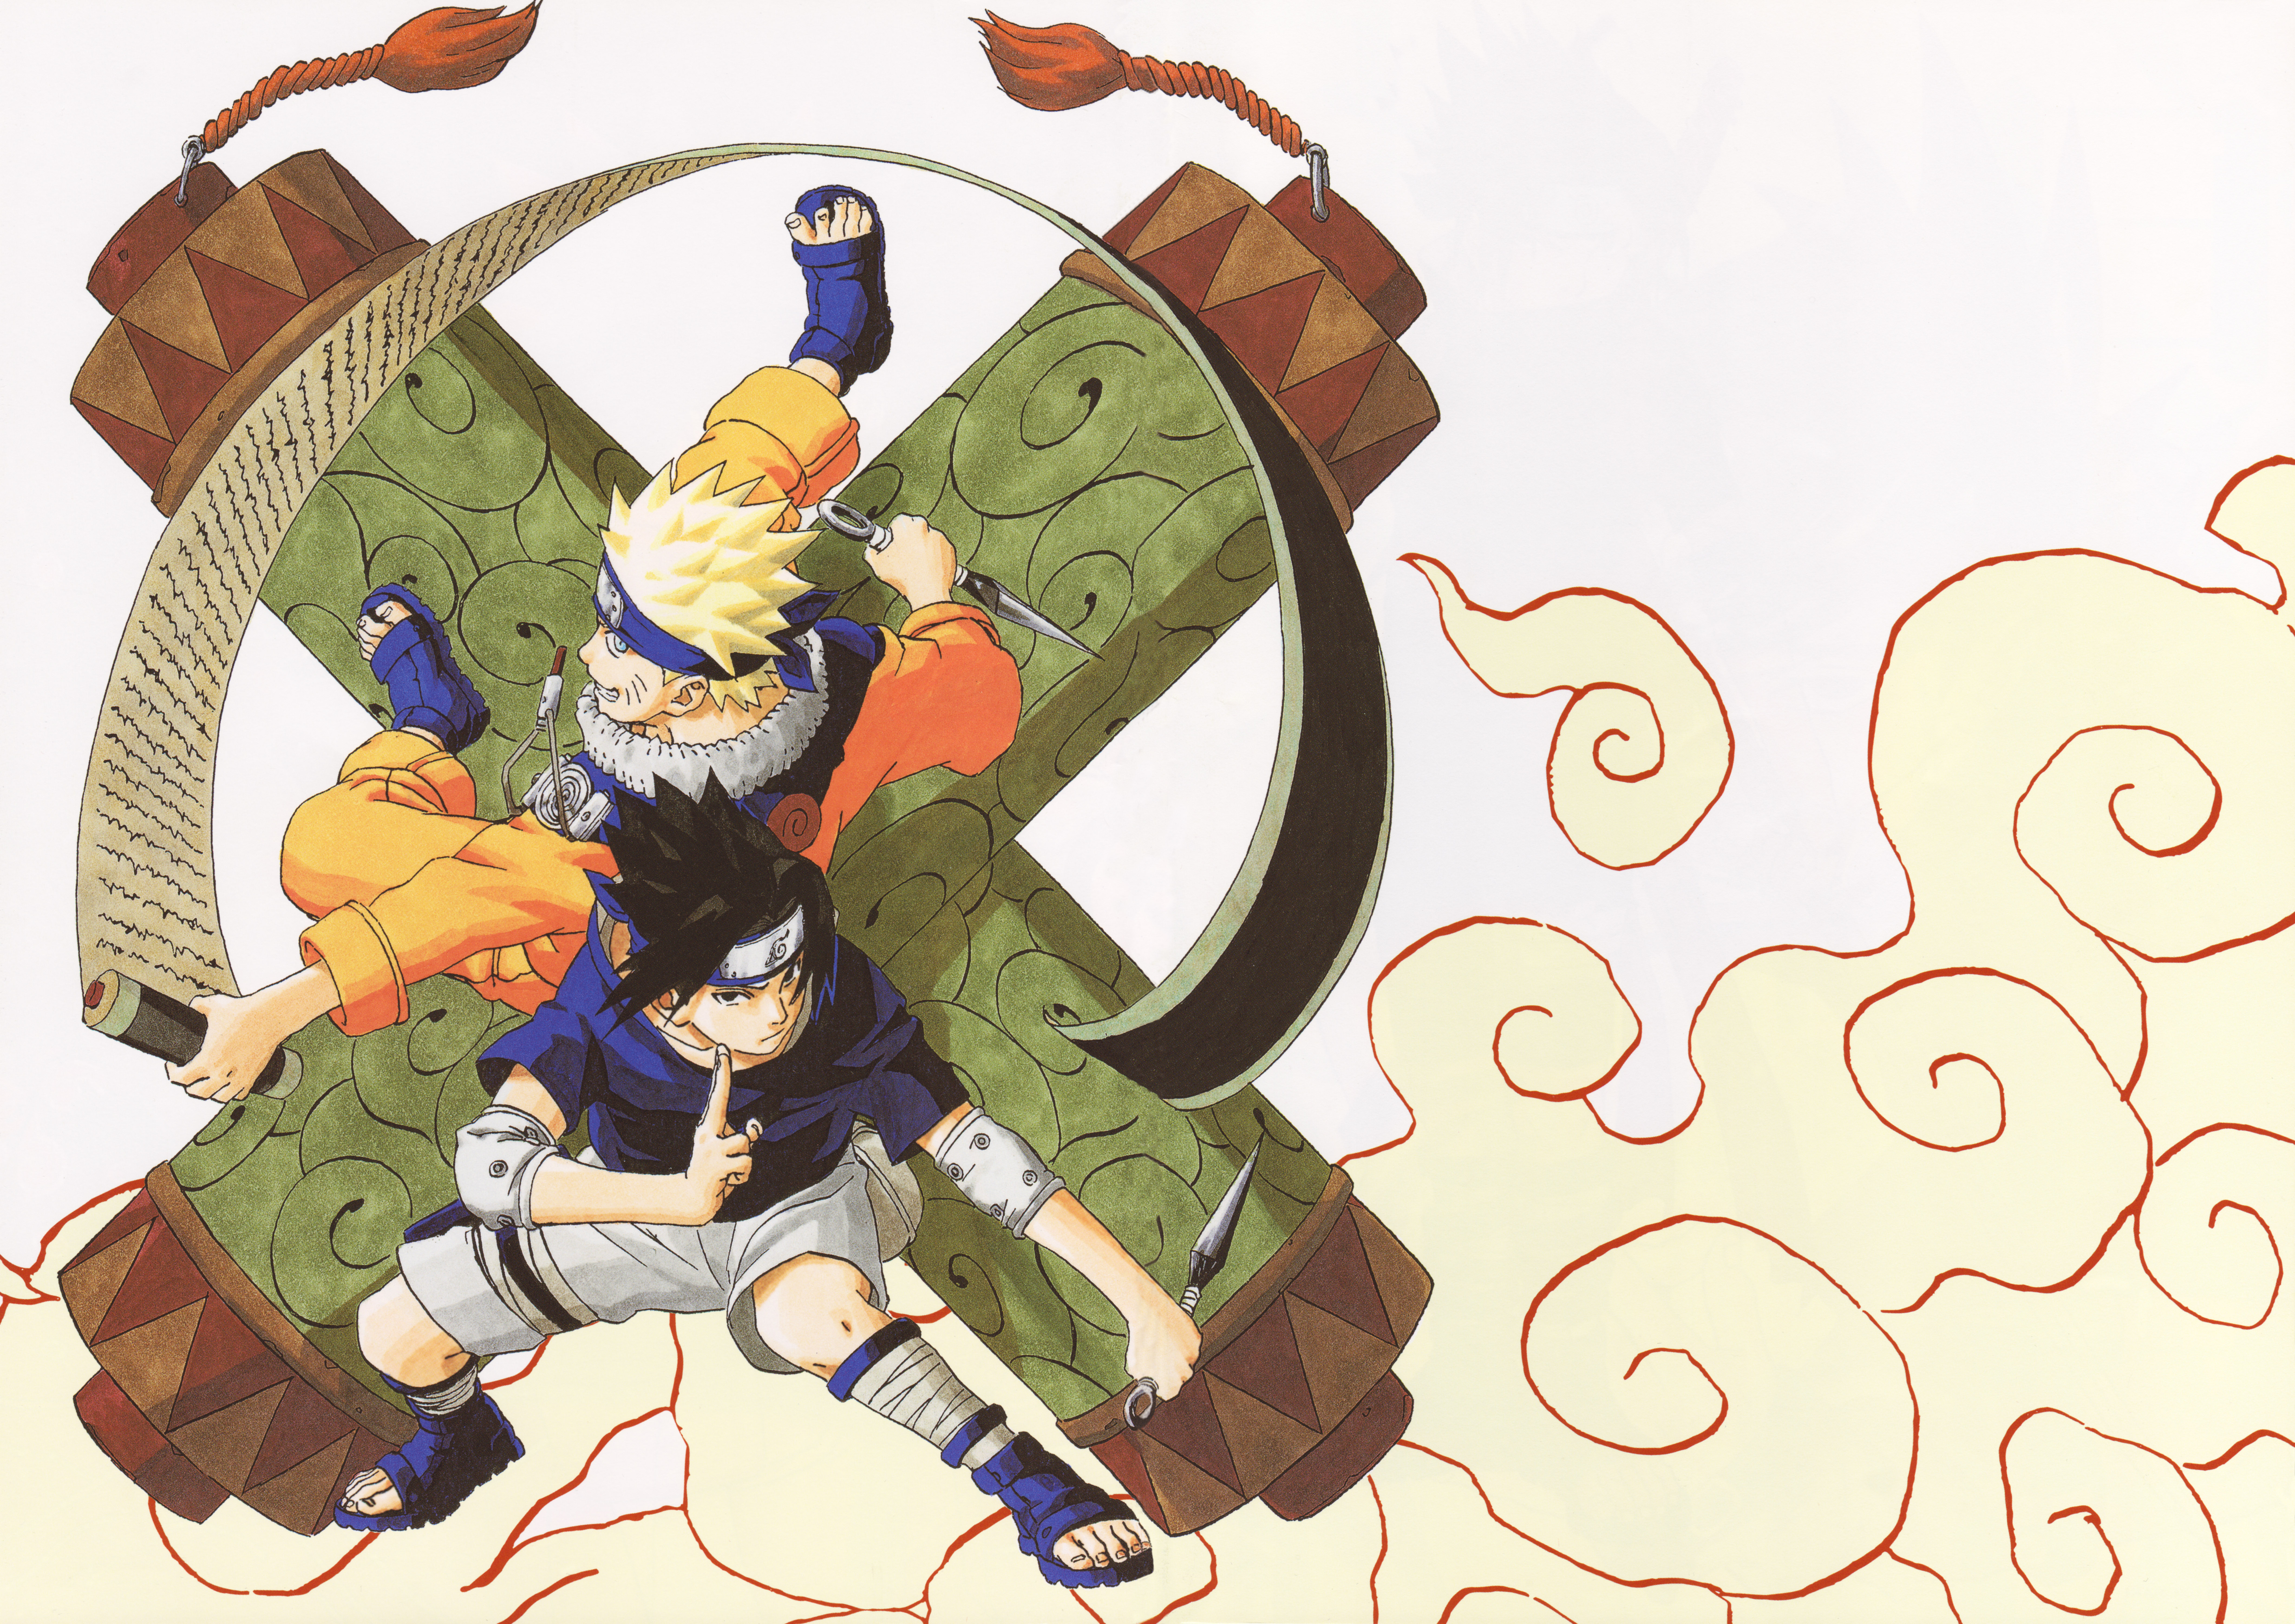 Naruto and Sasuke Strike a Pose with Giant Scrolls